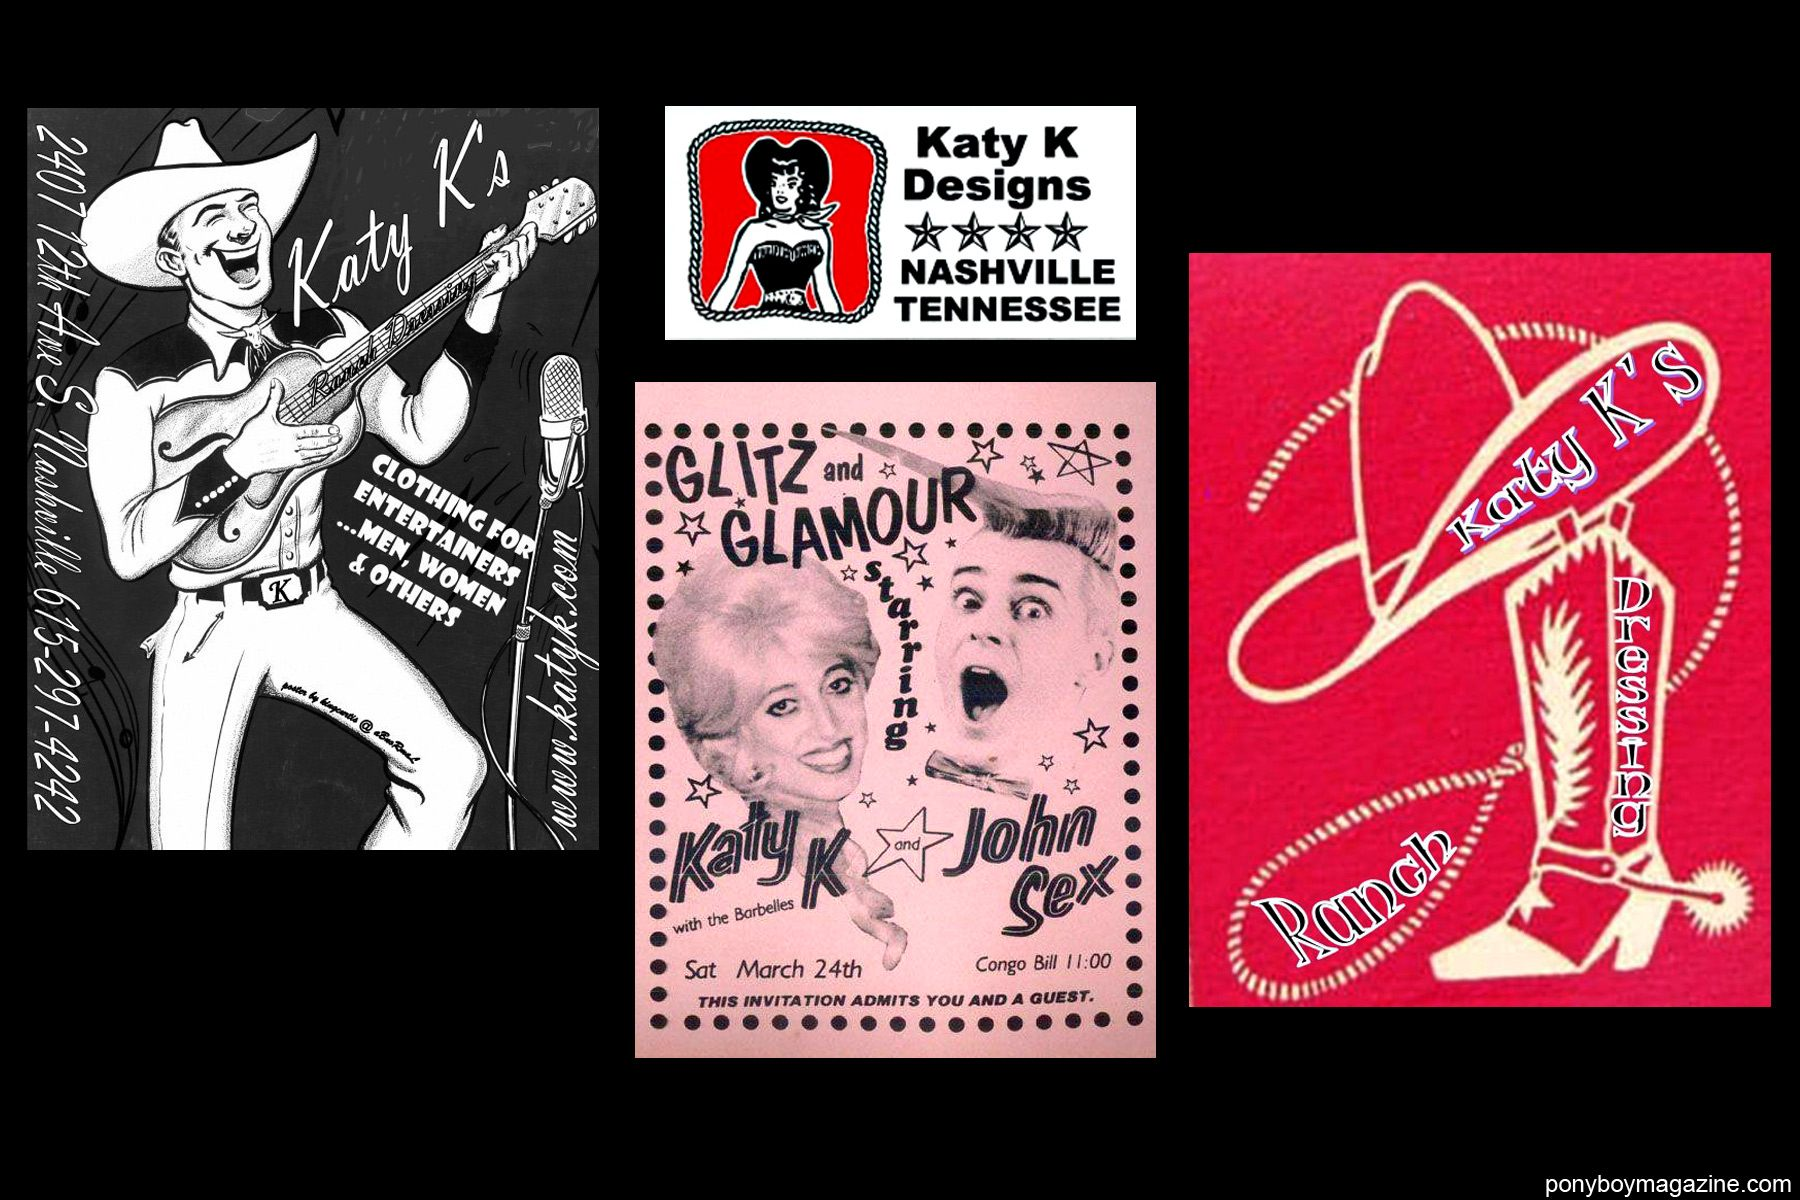 Old nightclub flyers of Katy K's performances for Ponyboy Magazine.